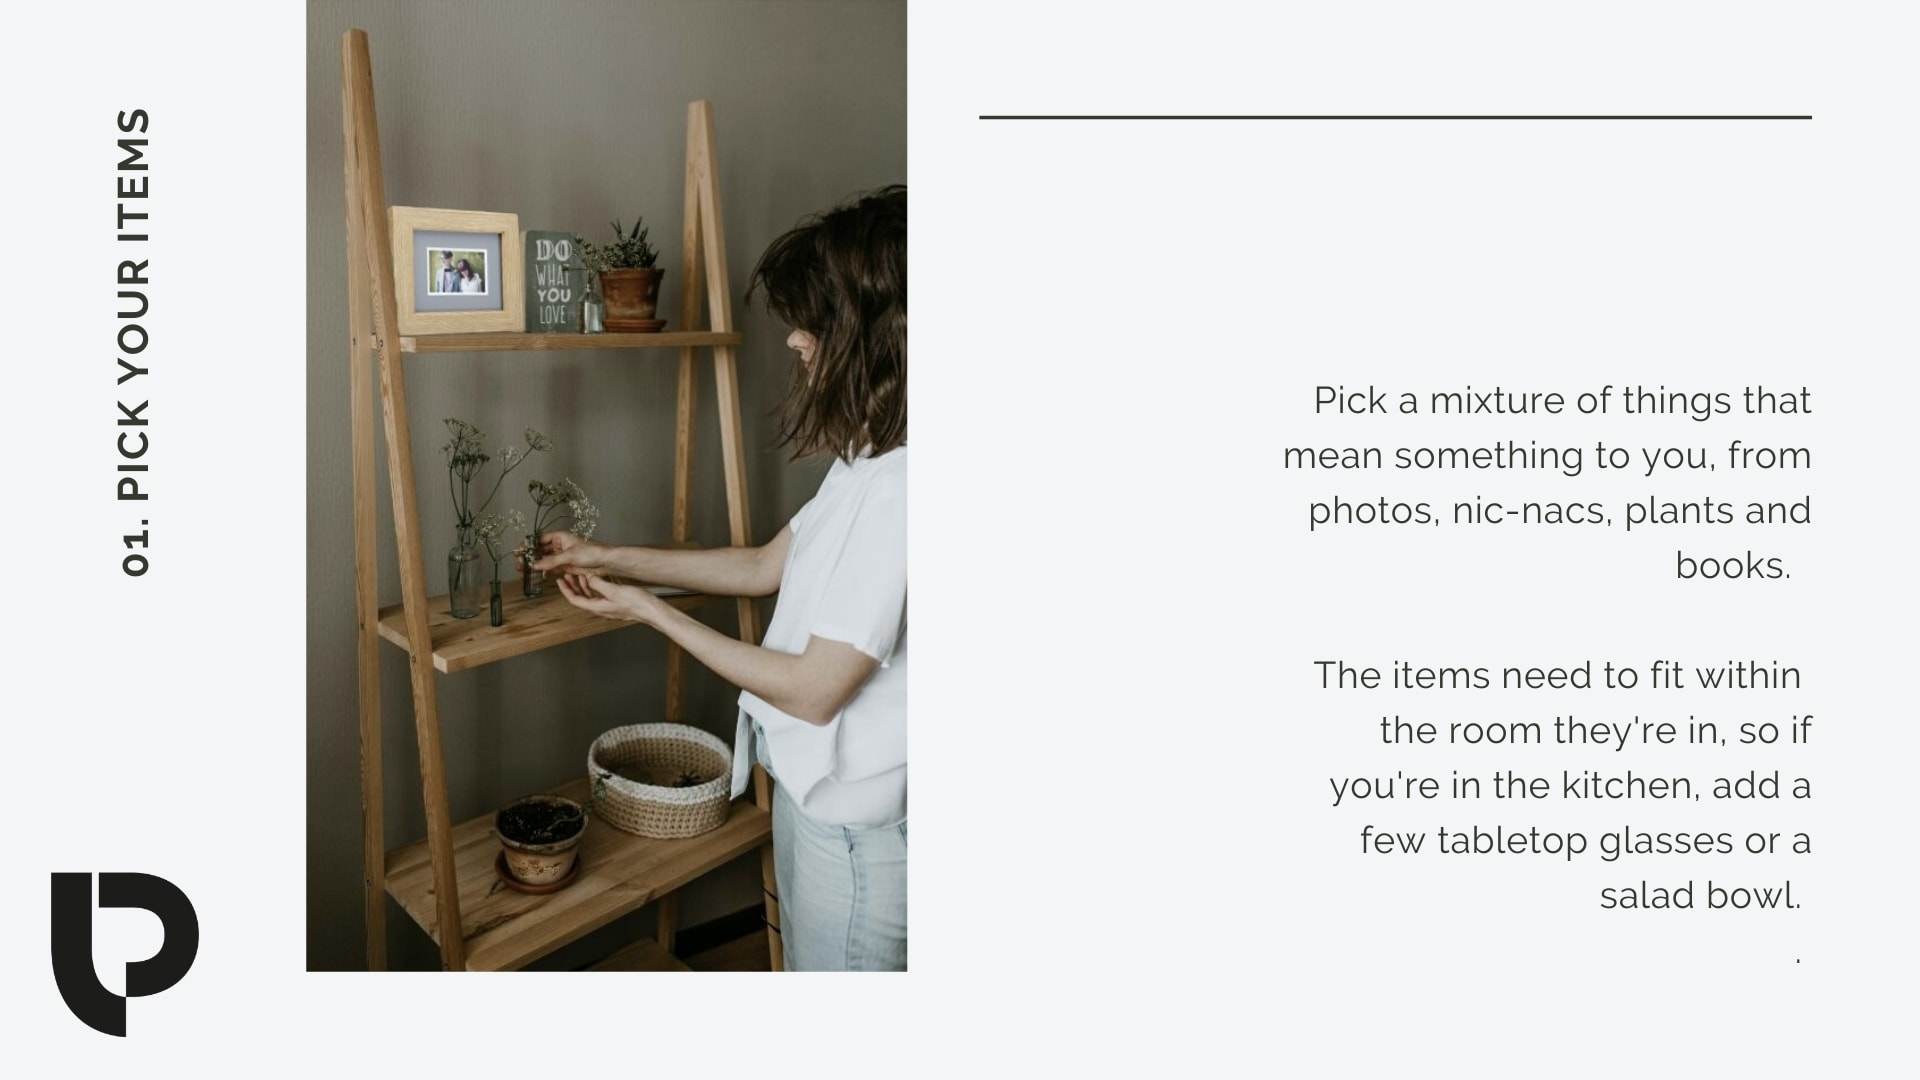 Photo shelf design: Pick a mix of things to sit around your photos